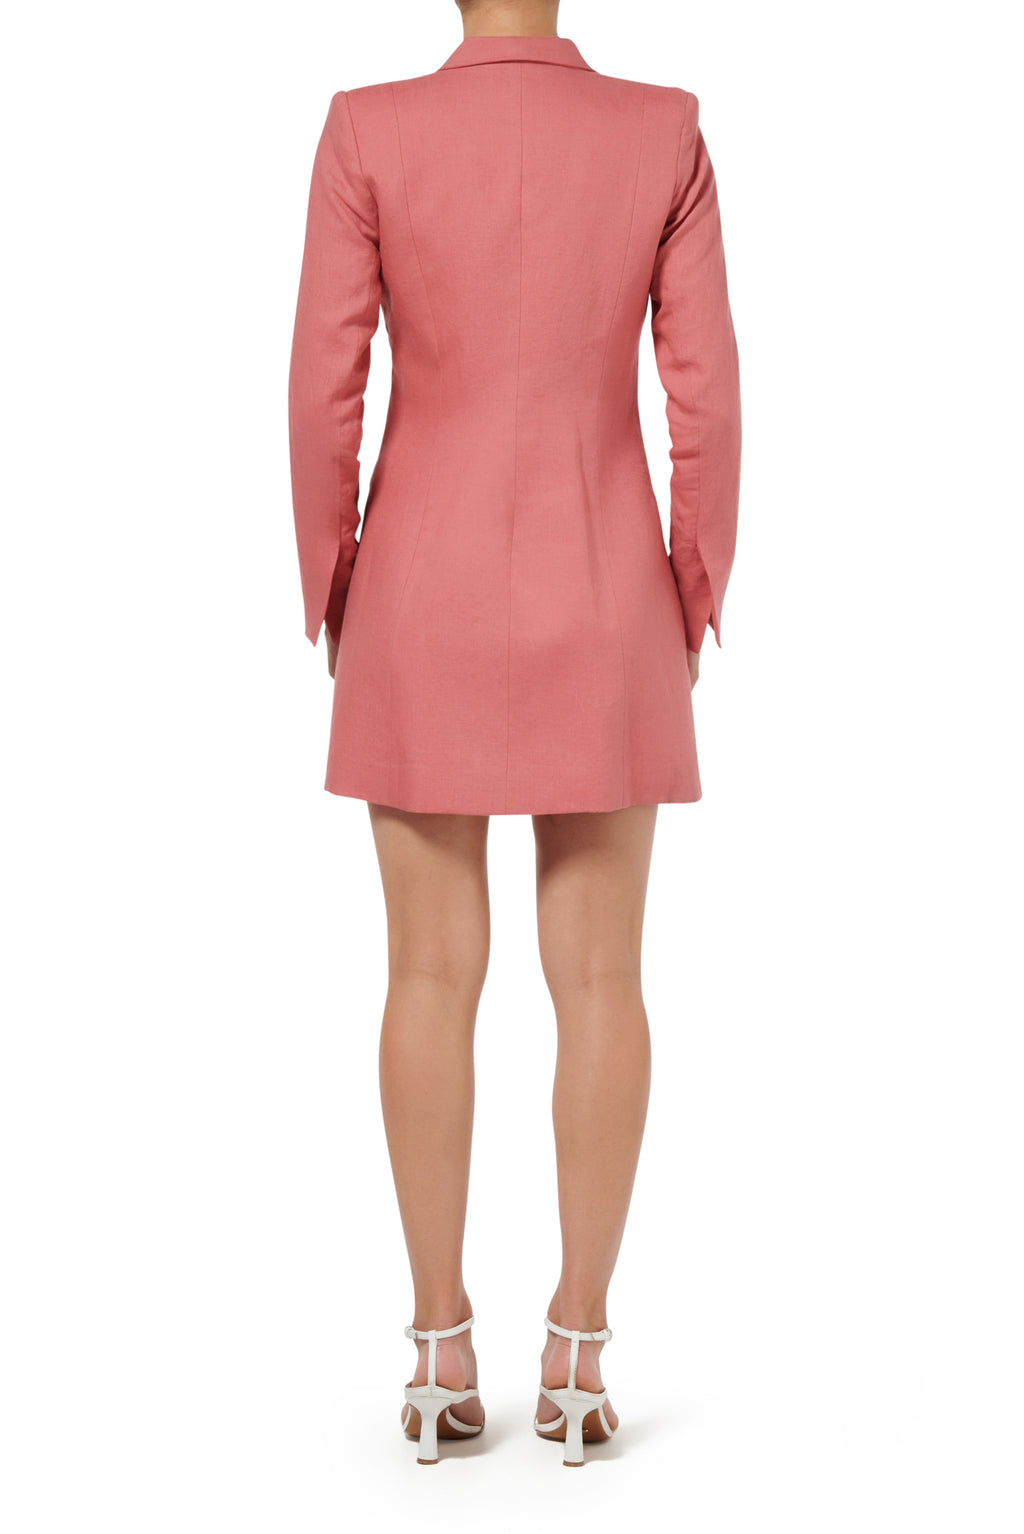 Freya Jacket Dress - Peach - PRE ORDER